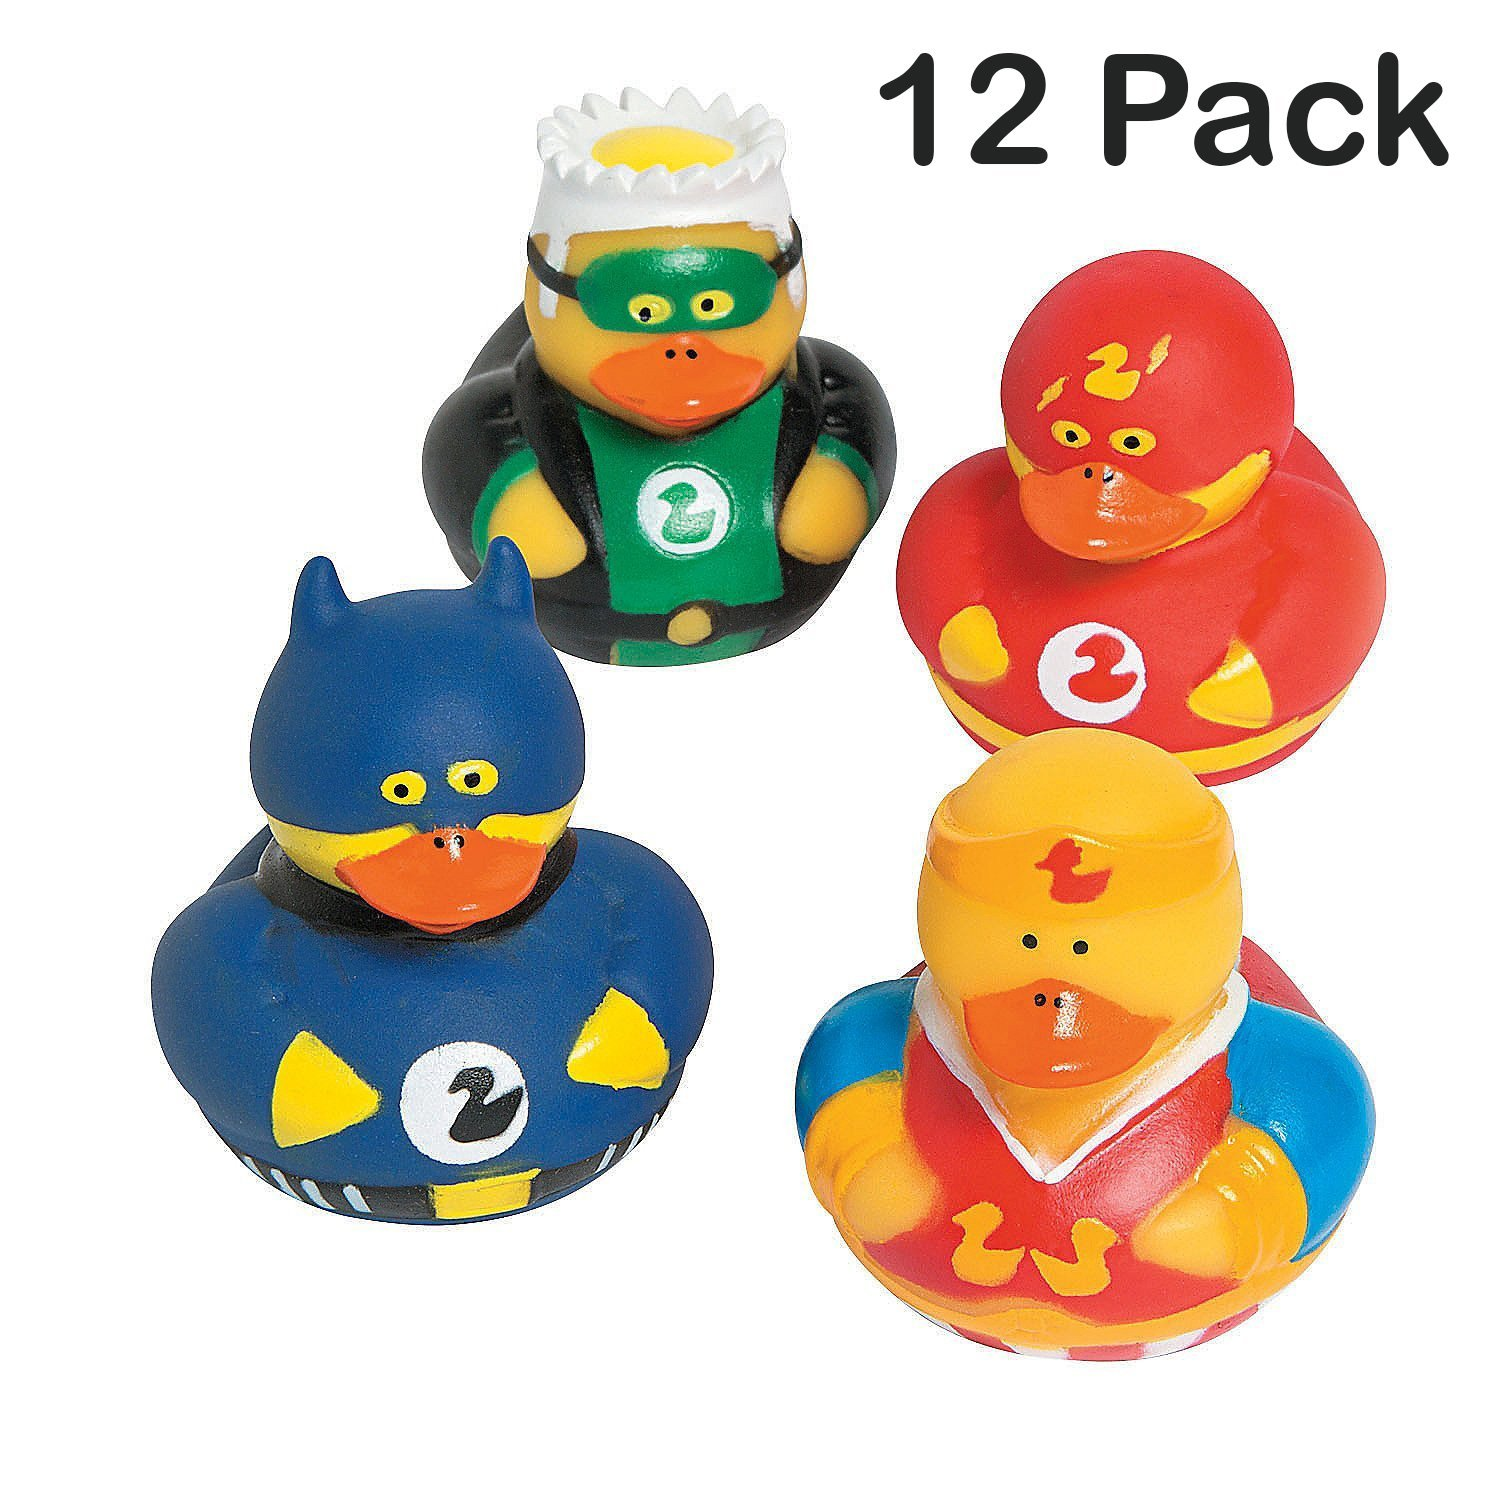 Superhero Ducks 2 Inches - Pack Of 12 – Assorted Colorful Superhero Rubber Duckies - For Kids Great Party Favors, Bag Stuffers, Fun, Bathtub Toys, Gift, Prize - By Kidsco